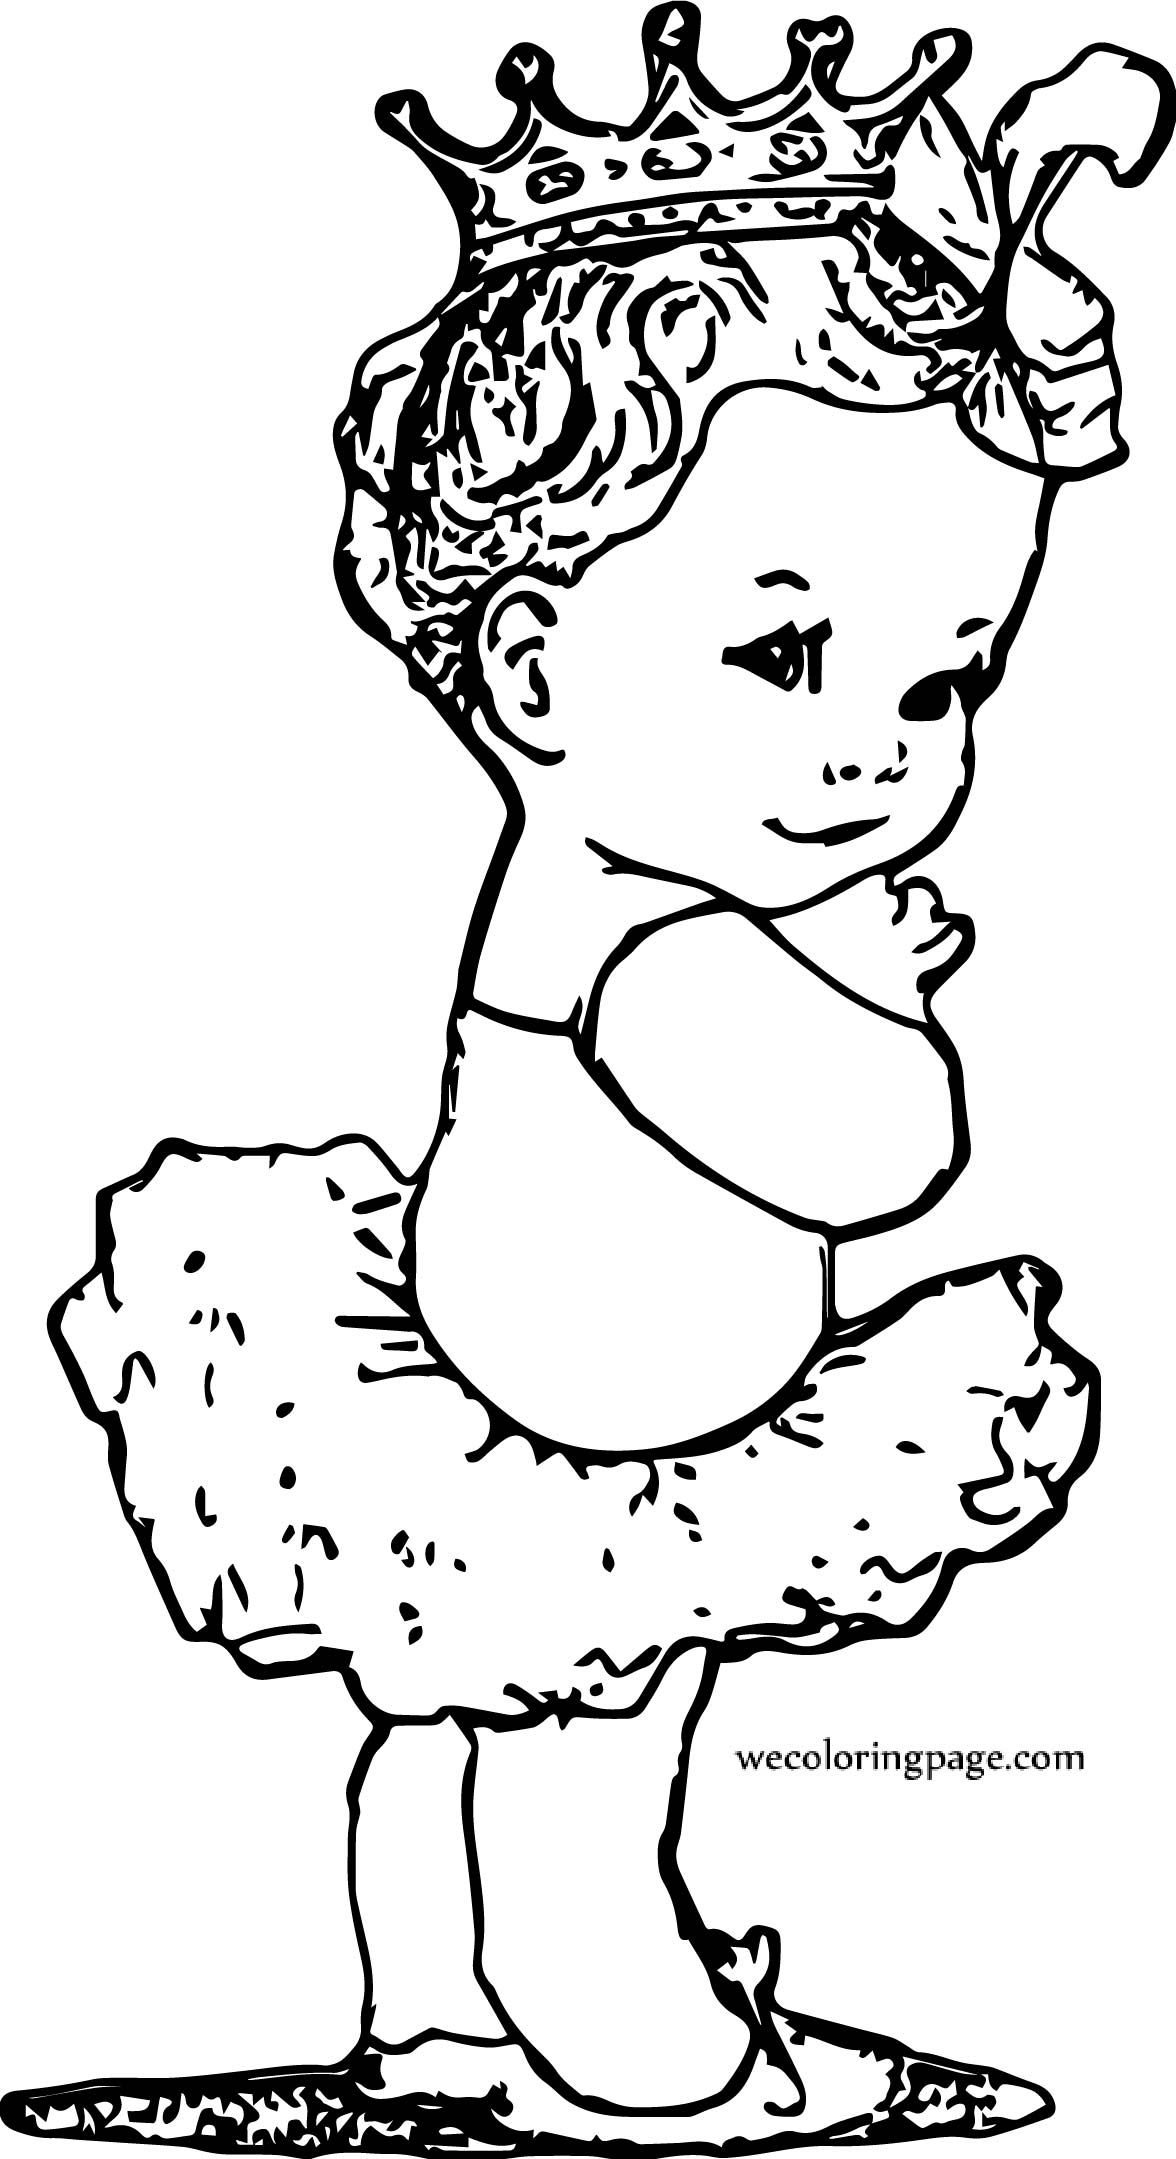 Baby Girl Free Printable Coloring Page Baby Coloring Pages Coloring Pages For Girls Coloring Pages